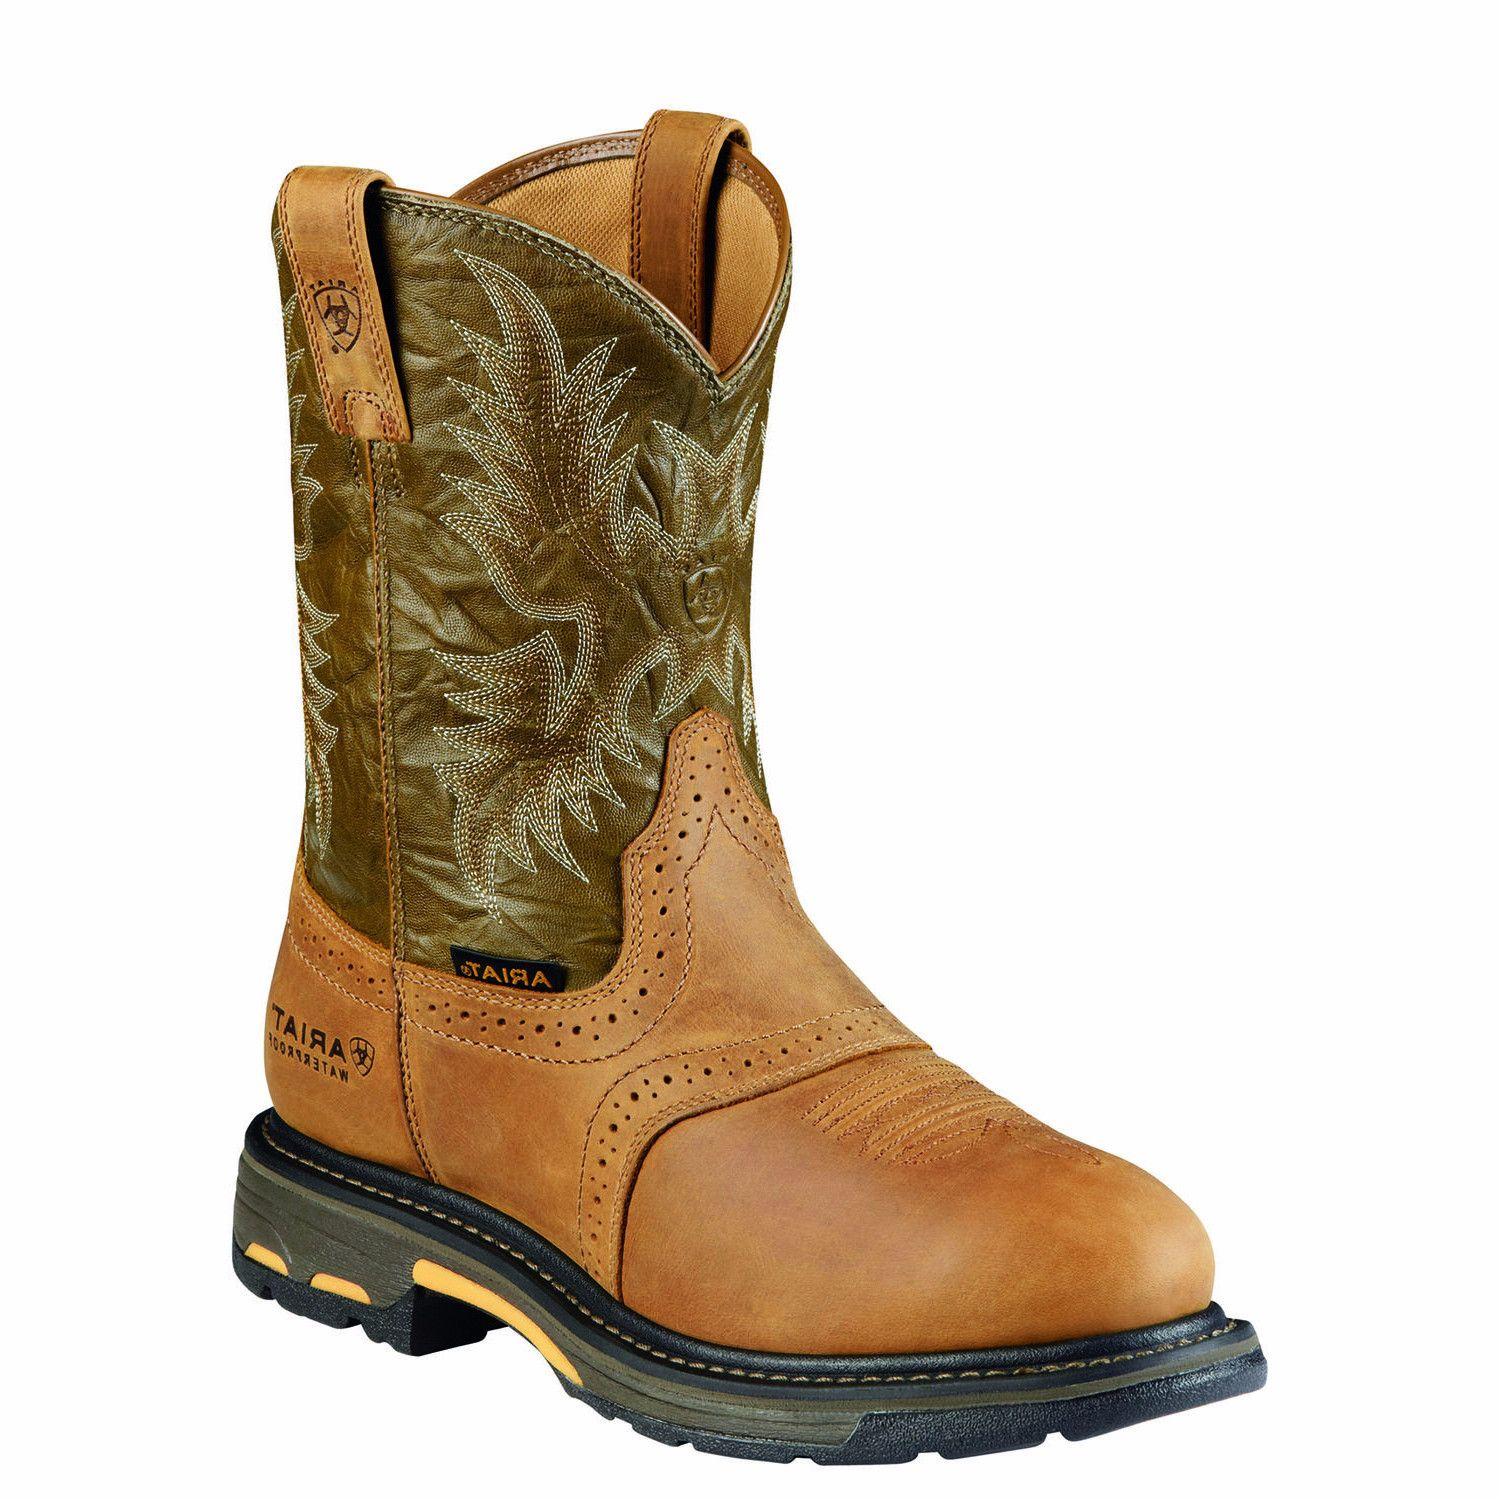 393e9faf9c https://www.wildwestbootstore.com/ daily https://www ...